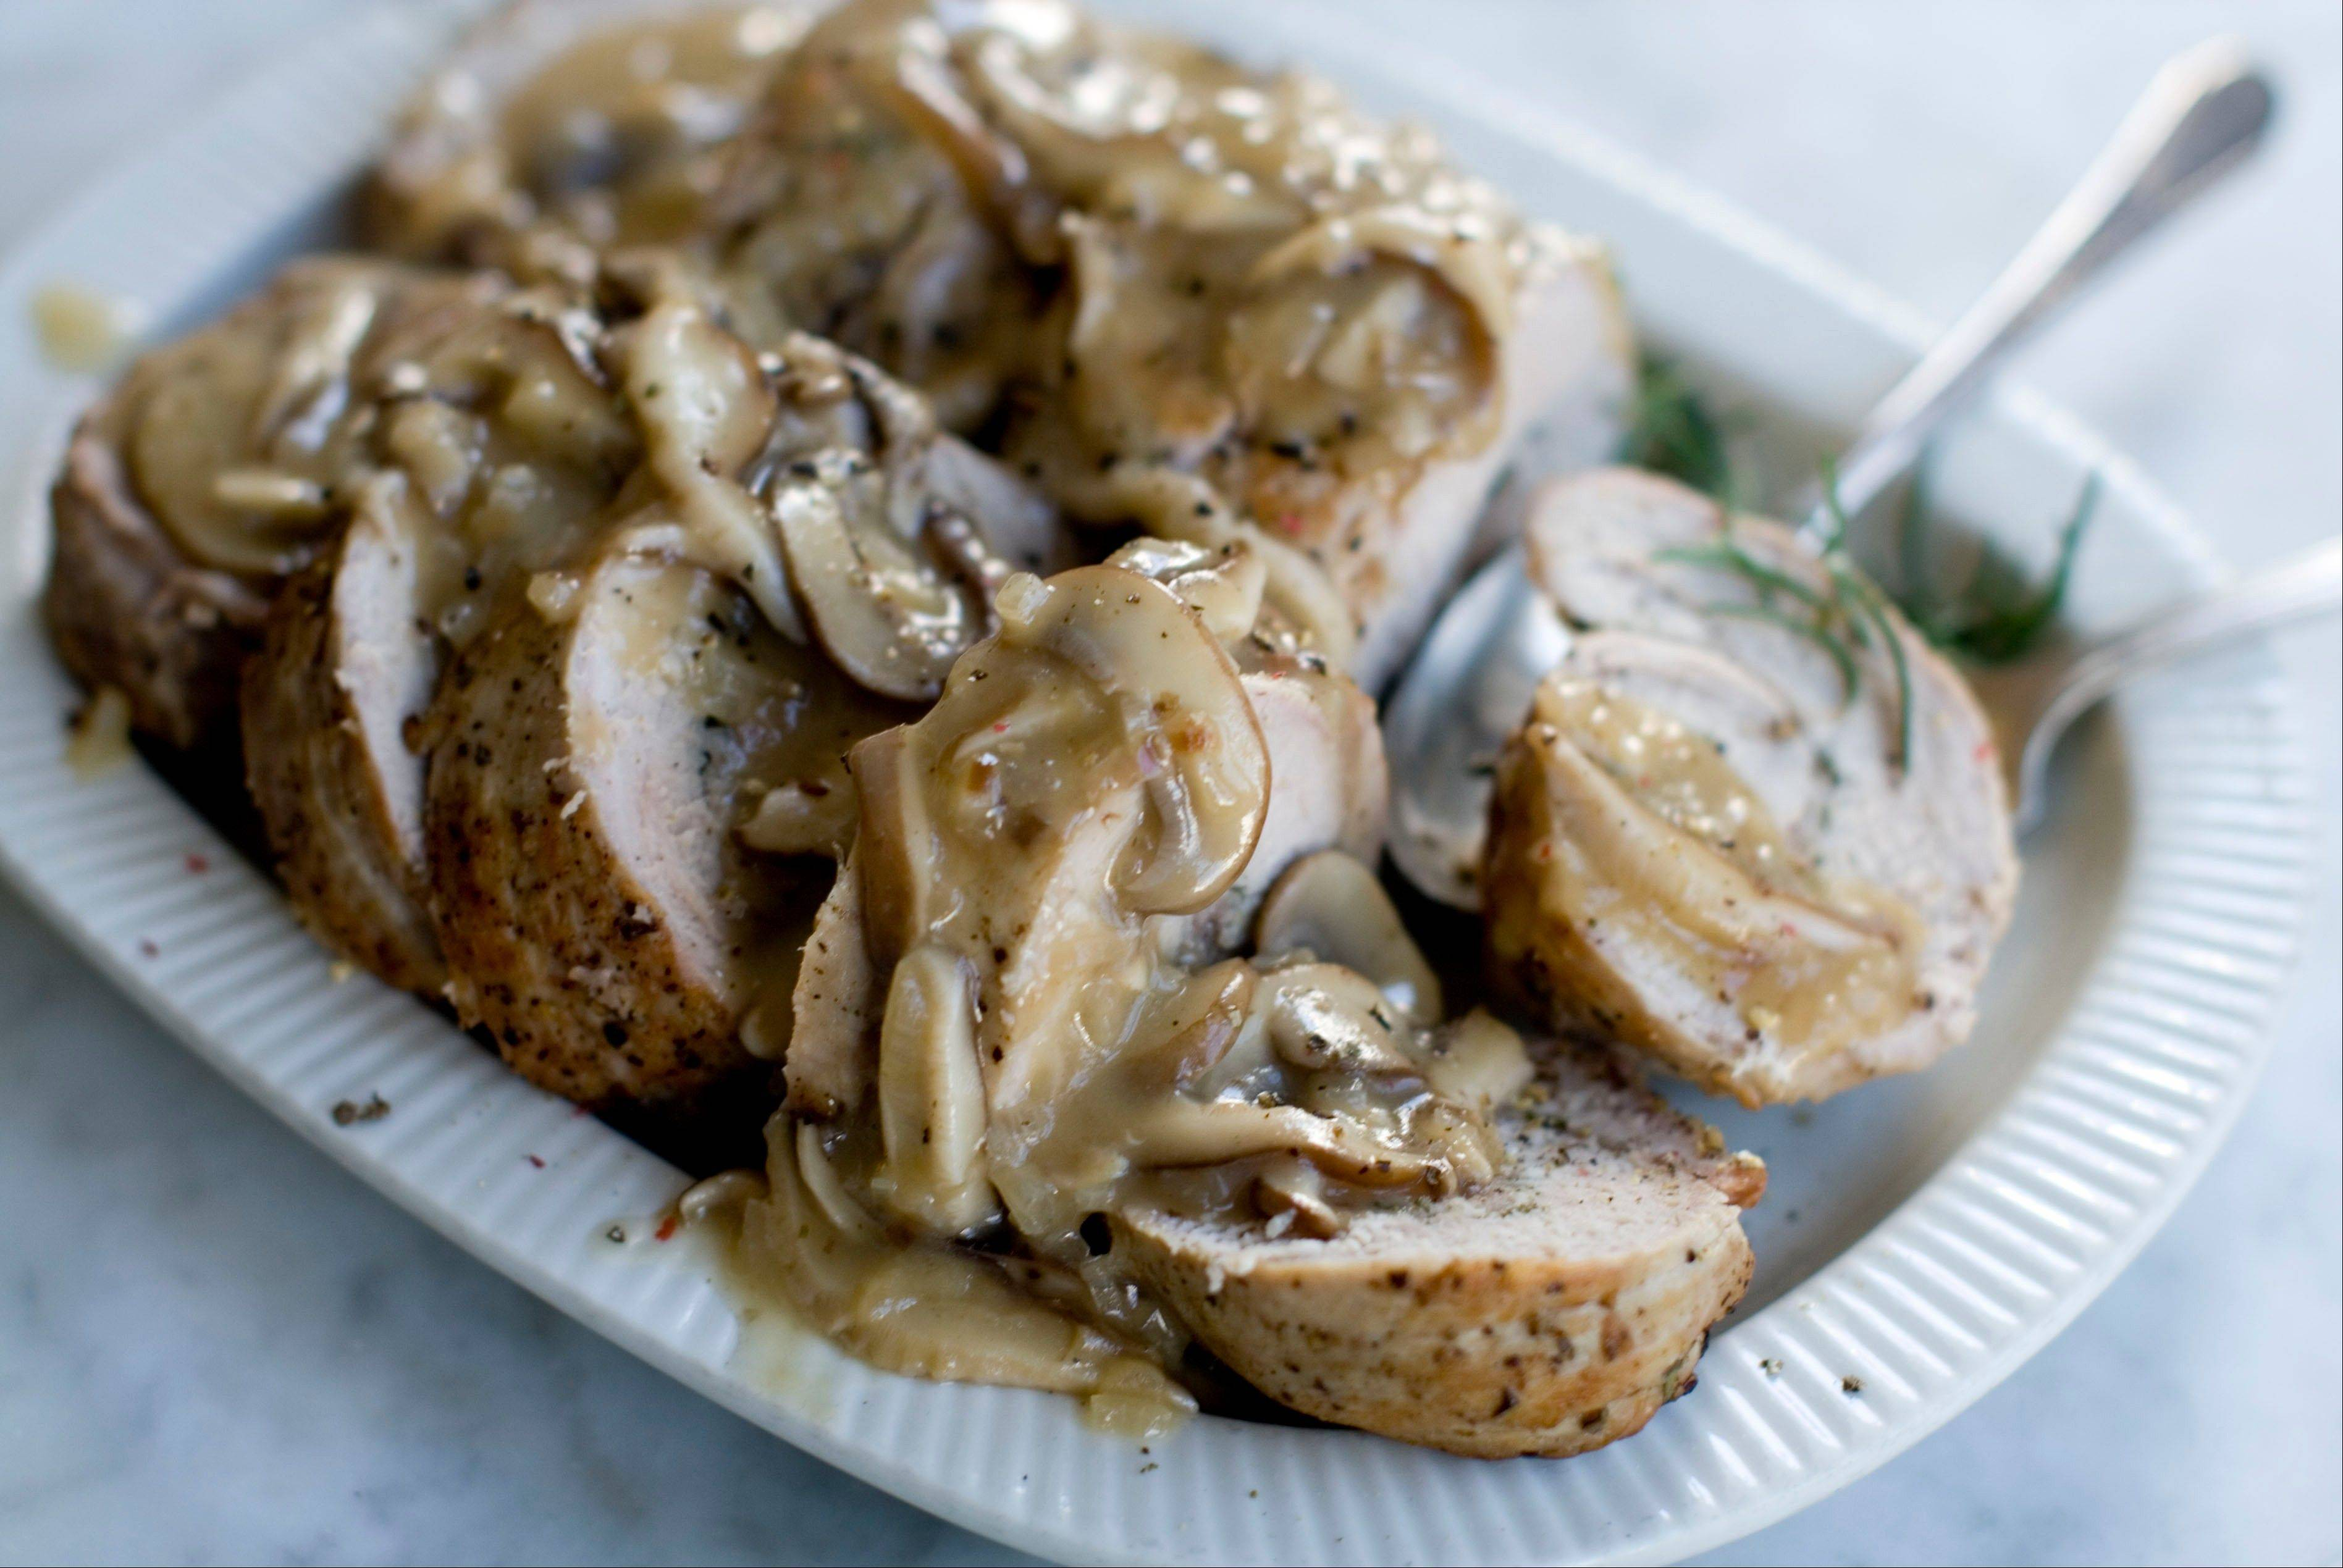 Double Pork Roast with Mushroom Marsala Sauce can be prepped a day in advance allowing time for celebrating, not cooking, when guests arrive.